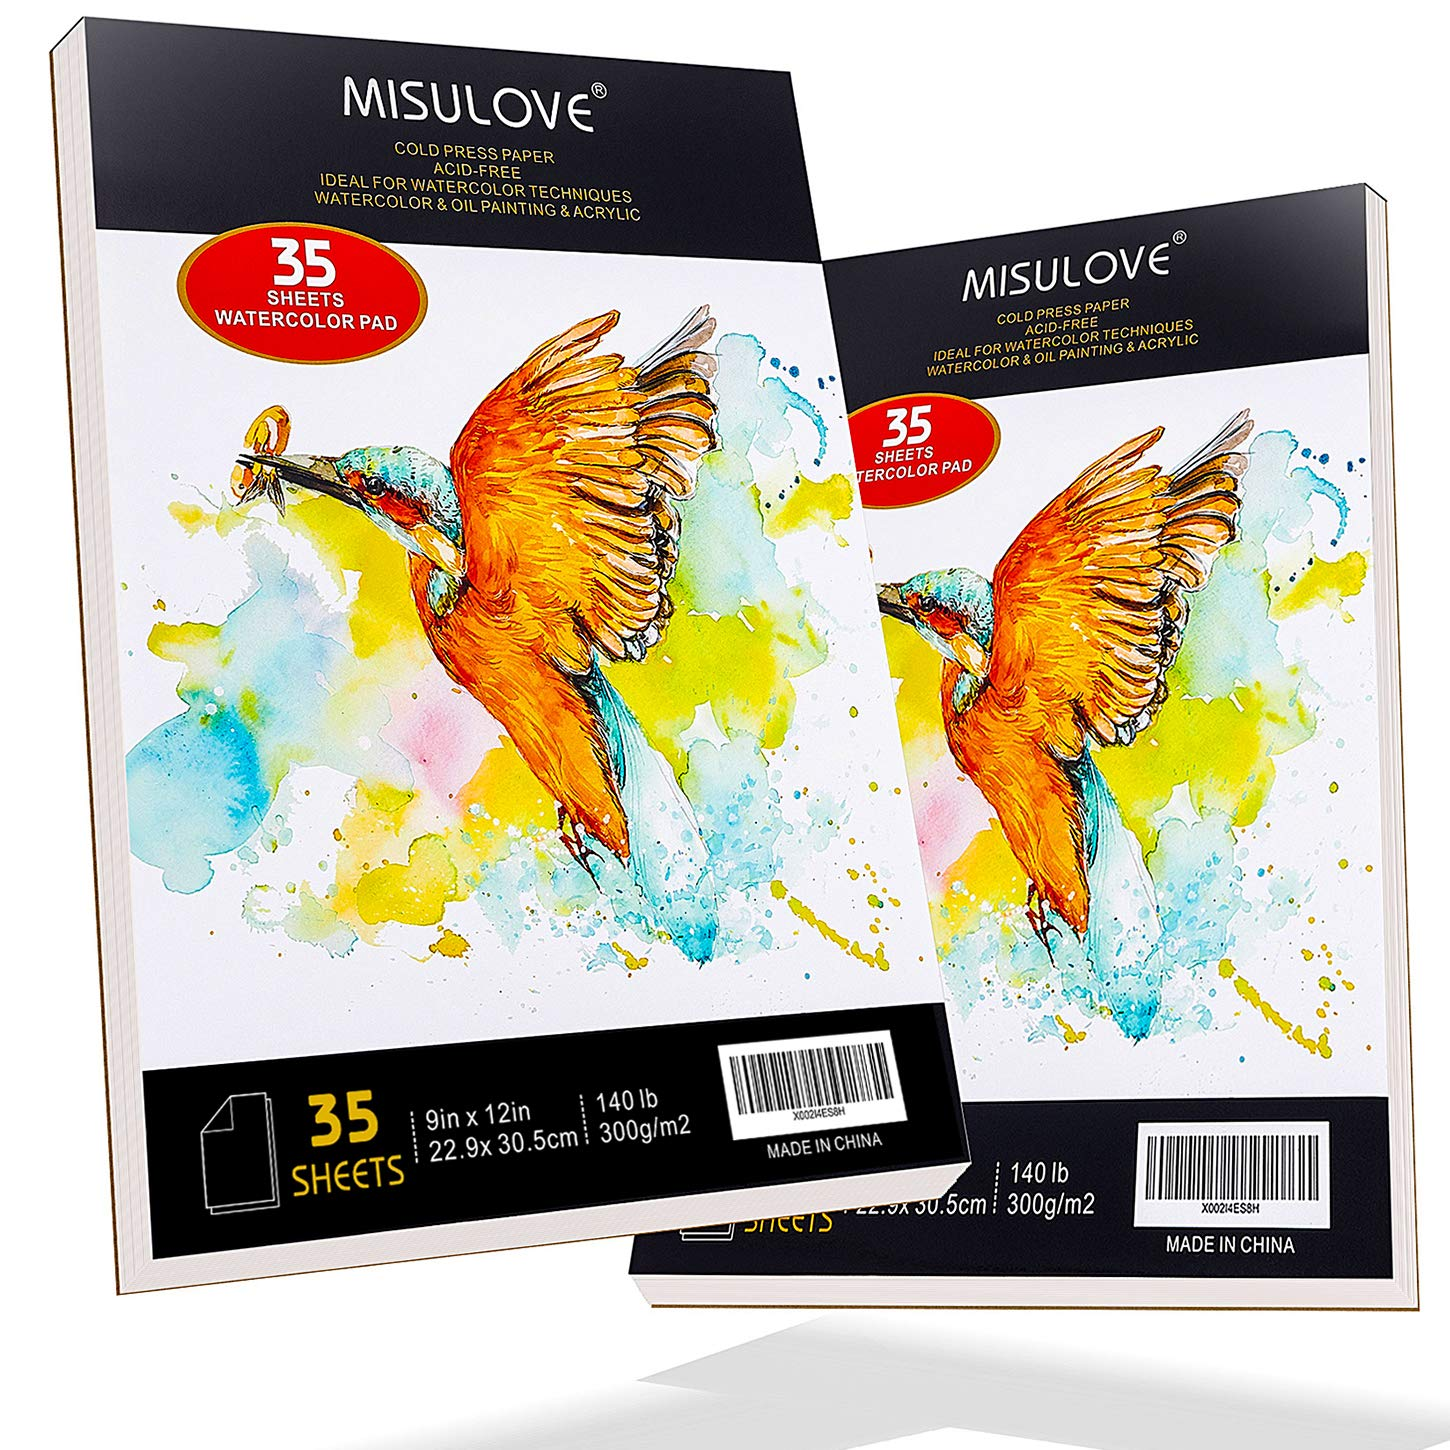 "MISULOVE 9x12"" Profession Watercolor Pad, Pack of 2, 70 Sheets (140lb/300gsm), Glue Bound, Cold Pressed, Acid Free, Art Sketchbook Great for Watercolors Techniques, Painting, Wet & Dry Mixed Media"